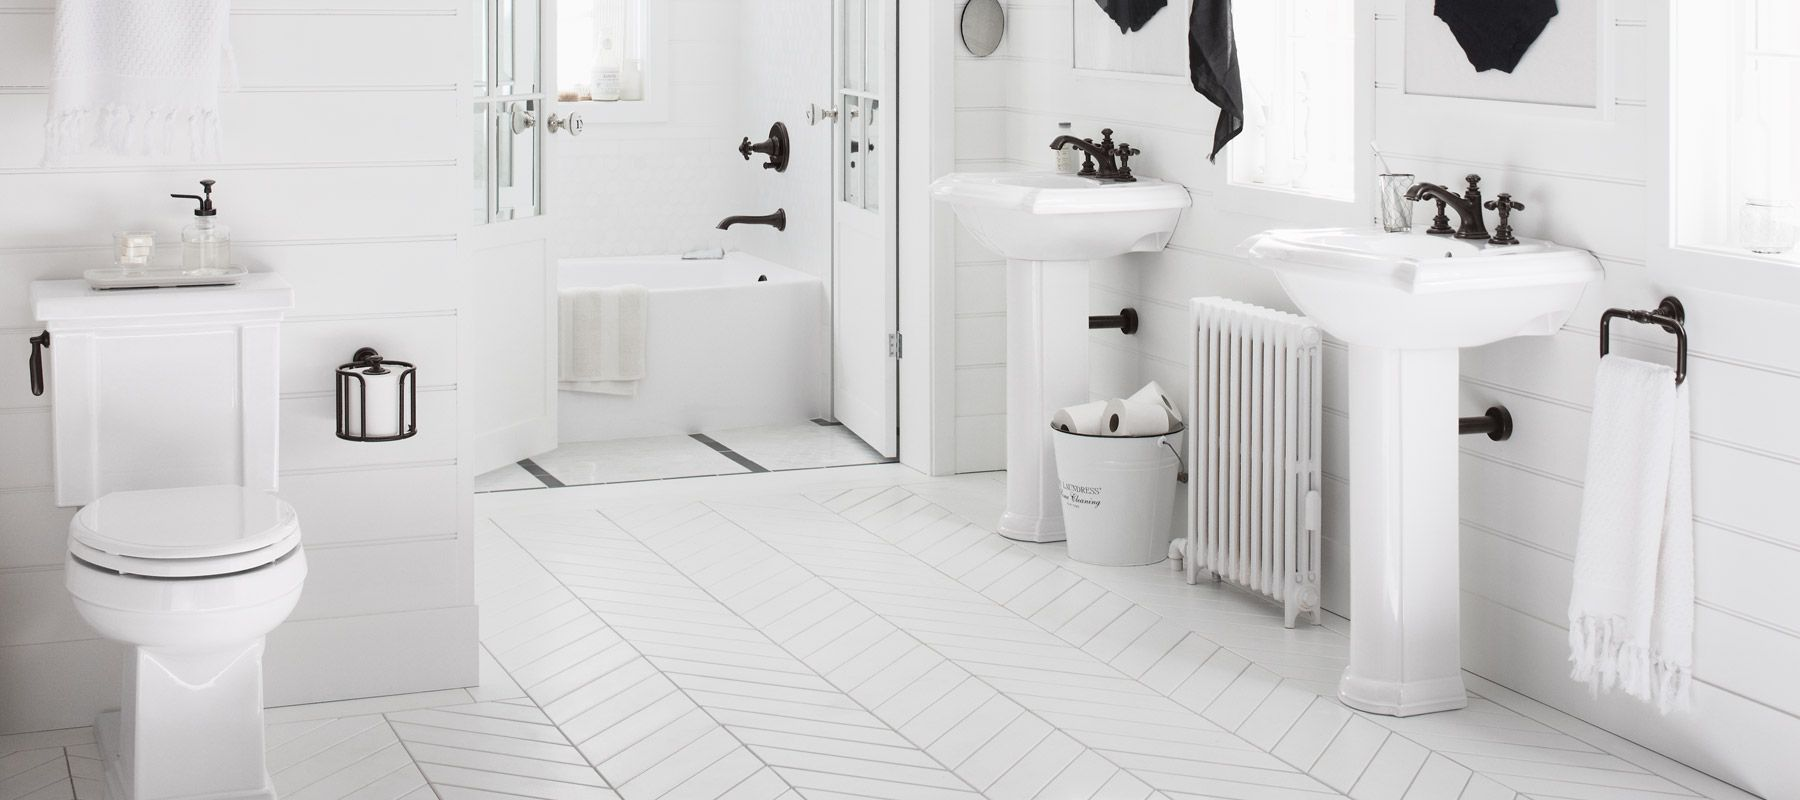 Bathroom Accessories | Bathroom | KOHLER | Finishes for our 1936 ...